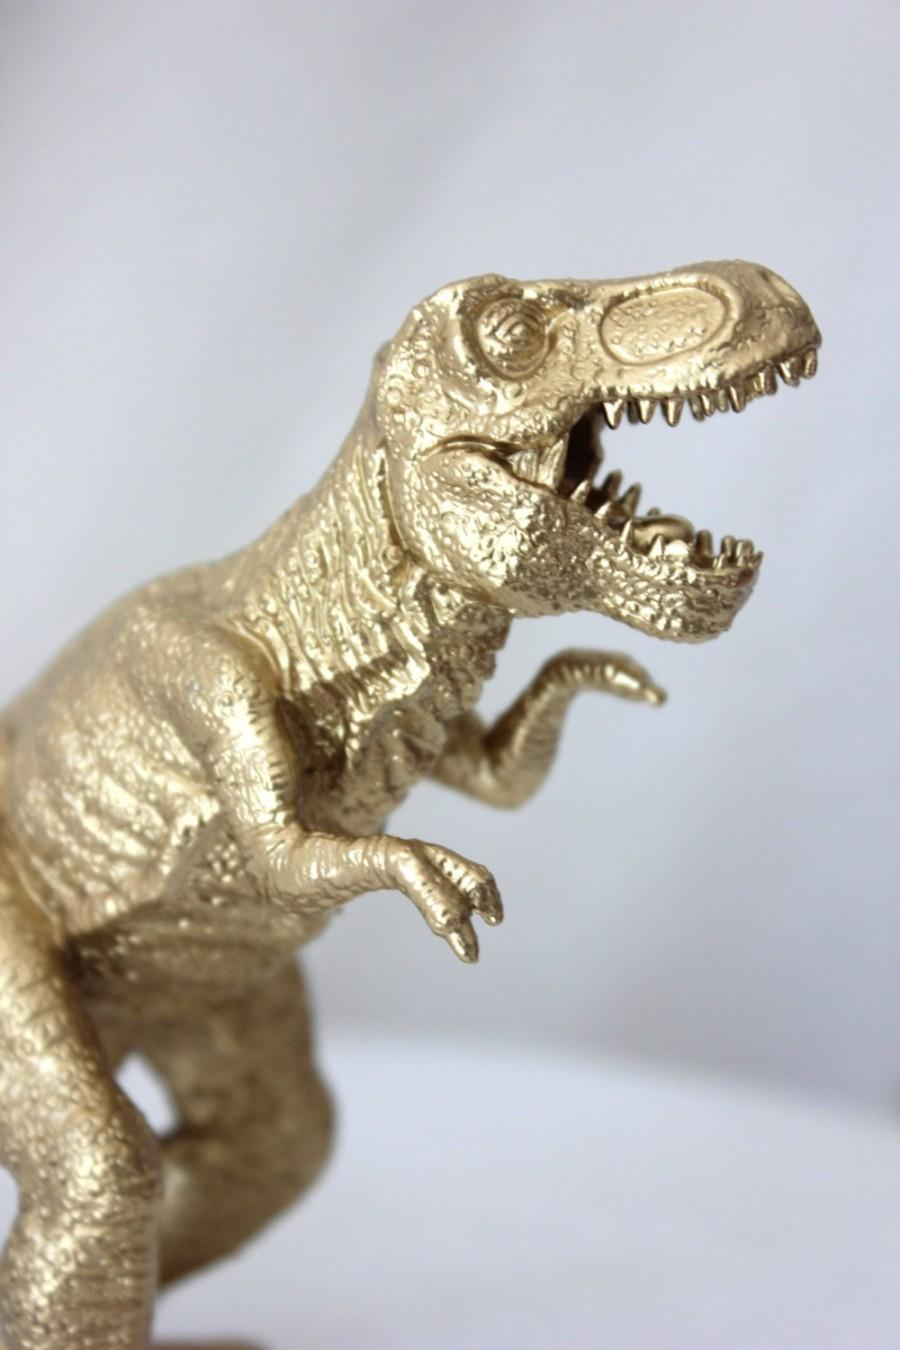 Свадьба - GOLD DINOSAUR Cake Topper T Rex Tyrannosaurus Figurine Animal Figurines Whimsical Vintage Golden Dino  Party Birthday Photo Prop Glam Chic